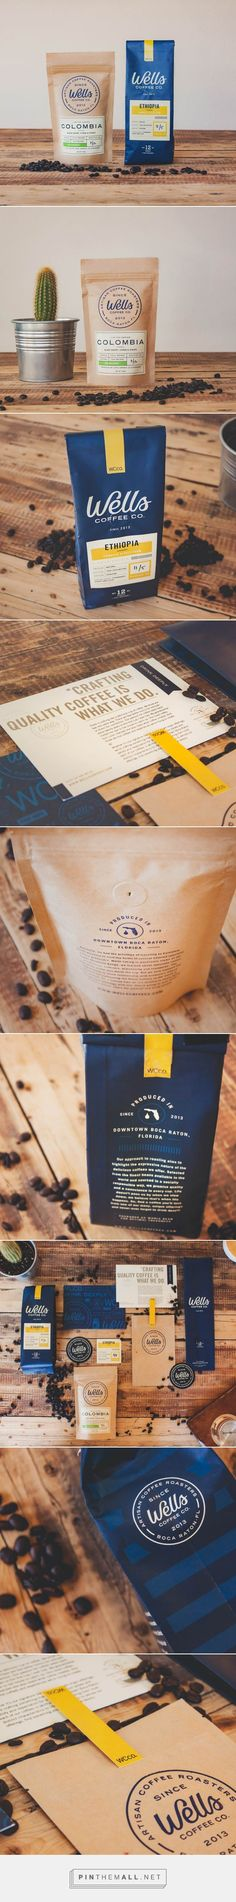 Wells Coffee Packaging Design                                                                                                                                                     More